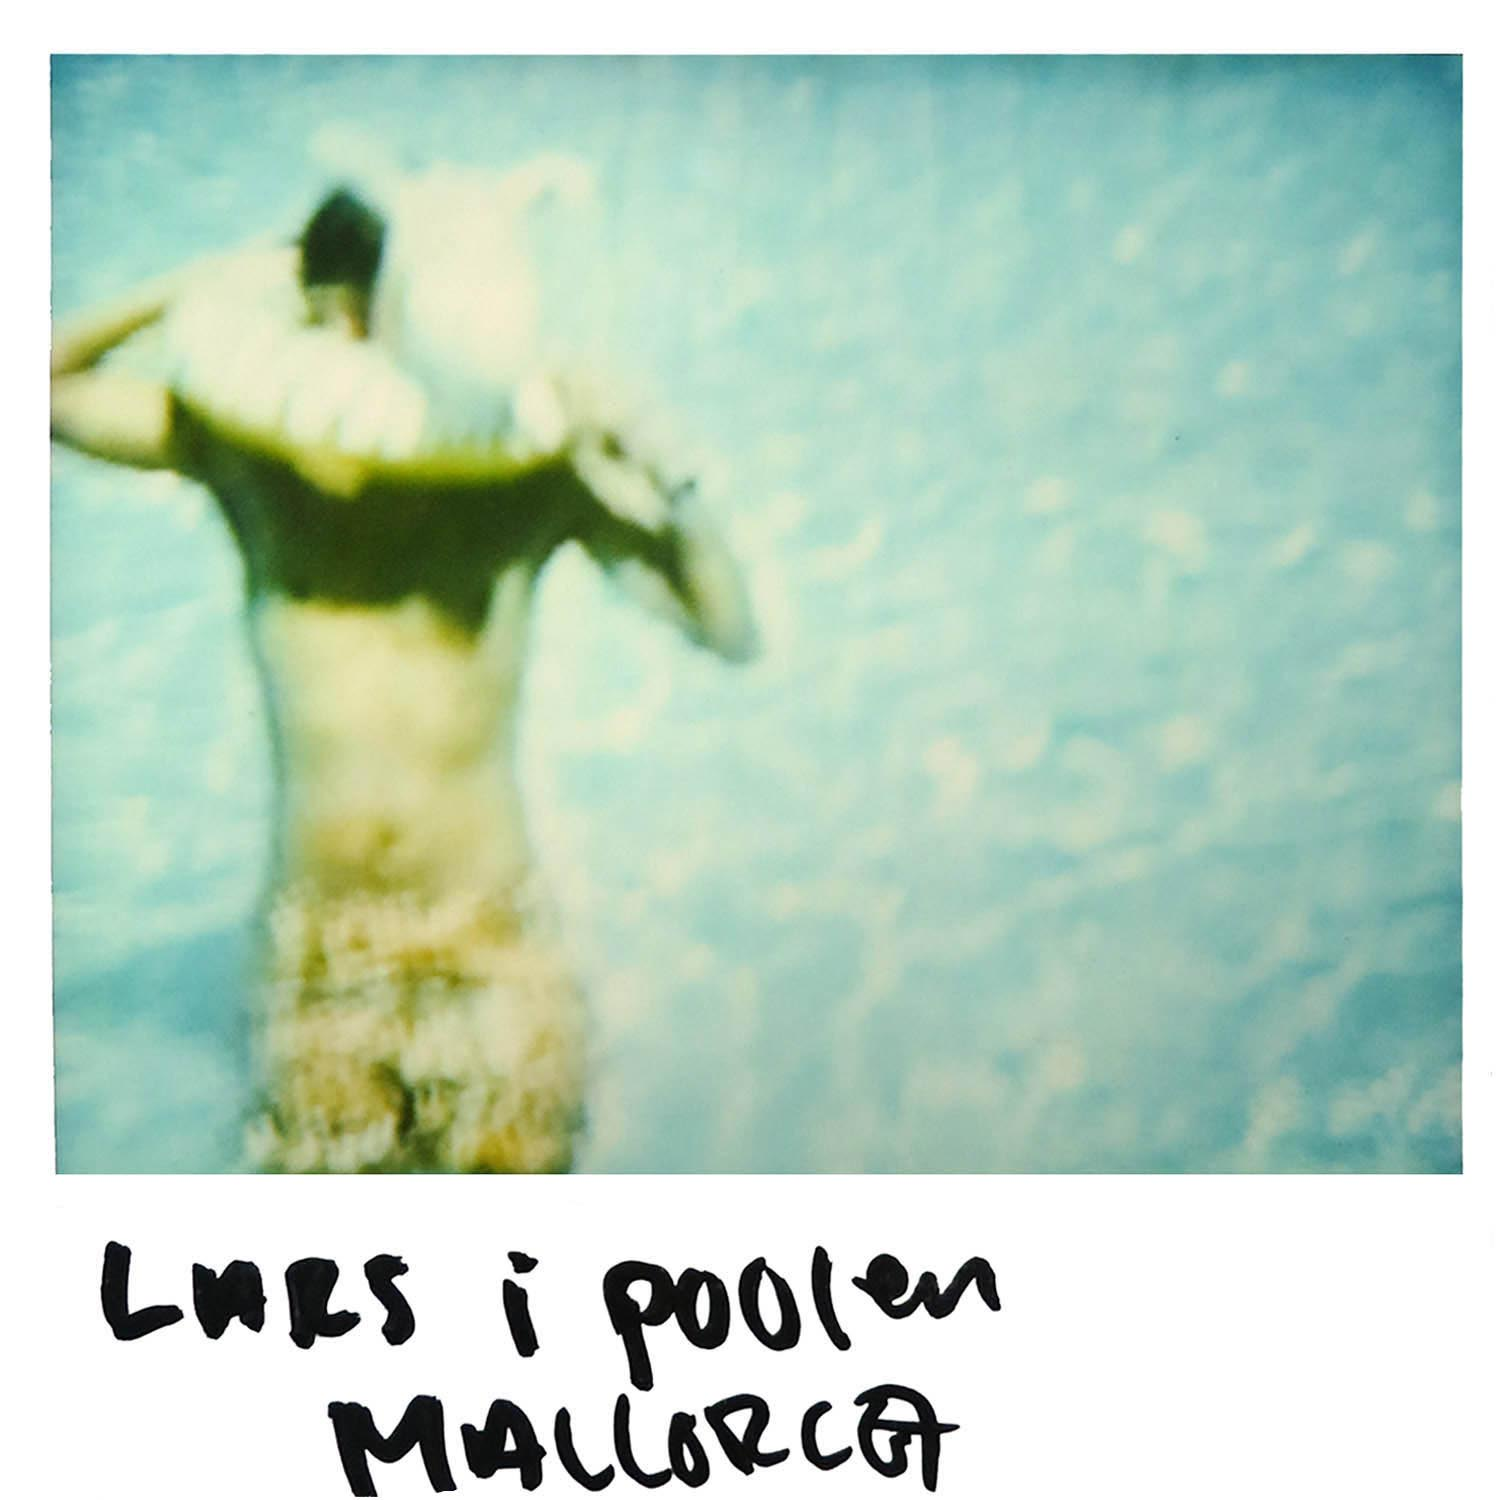 one more of Lars in the pool  Mallorca